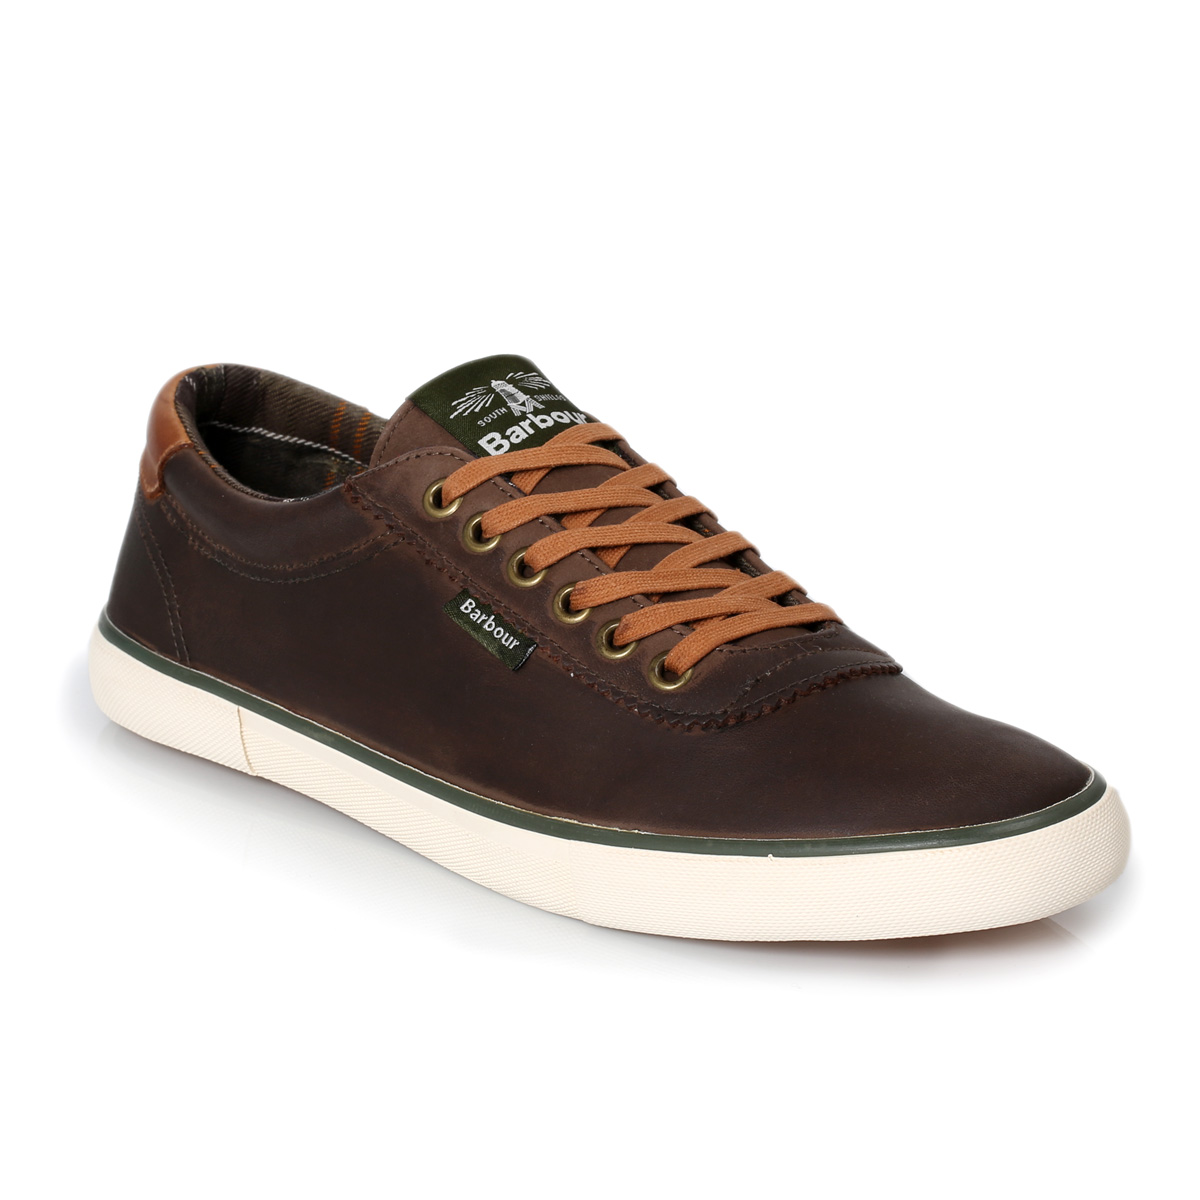 Men's Shoes, Boots & Trainers Style from the sneakers up with our retro kicks and future-thinking techy trainers. Throw on your favourite jeans and a pair of Vans for a fail-safe combo, or opt for a pair of all-black Derbies or Chelsea boots for a look that mixes business with leisure.